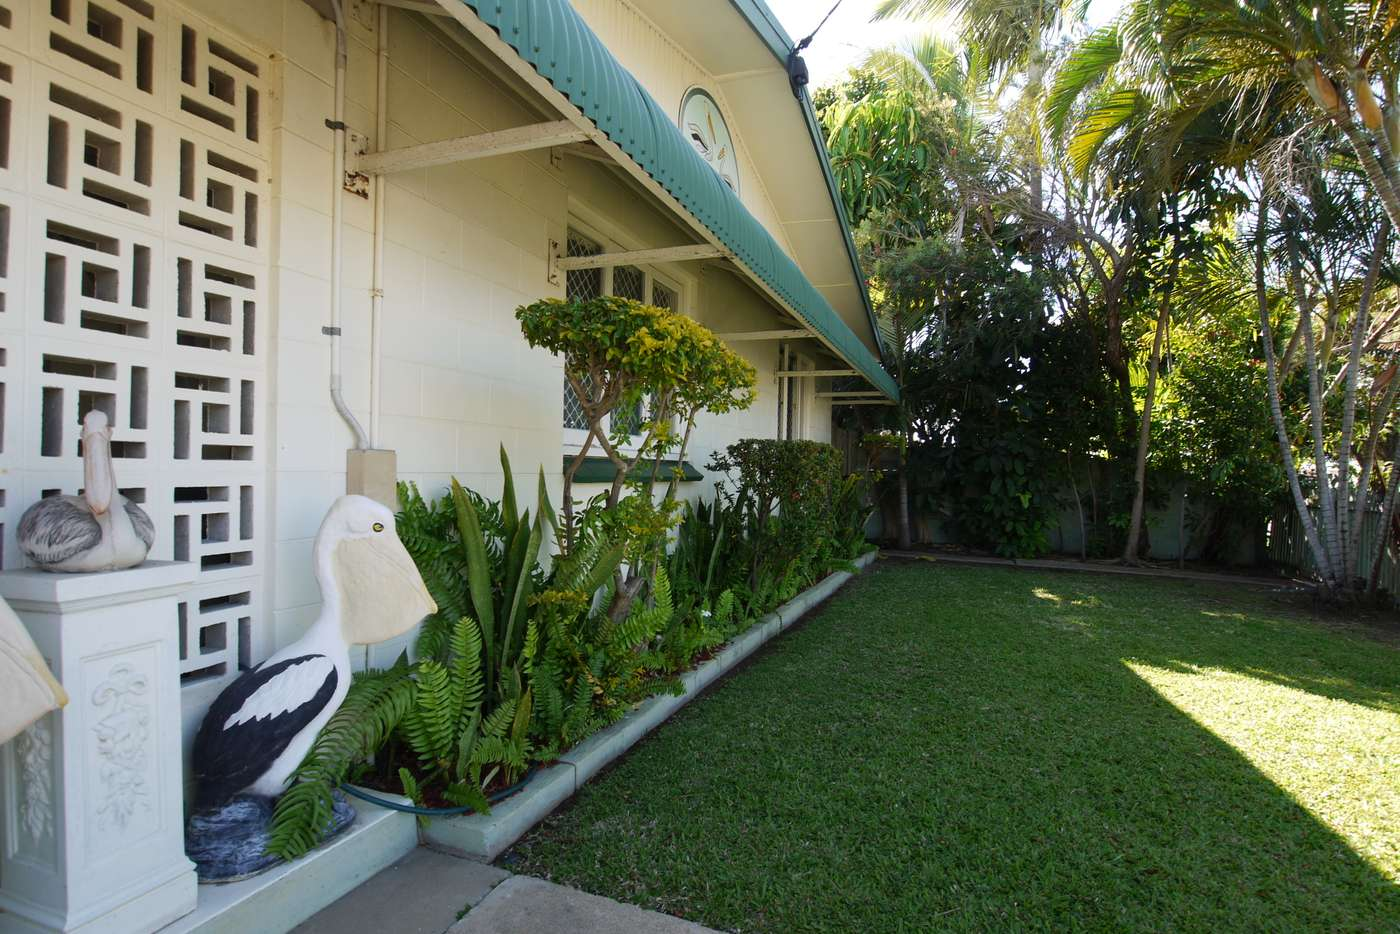 Main view of Homely unit listing, 1/110 Eyre Street, North Ward QLD 4810